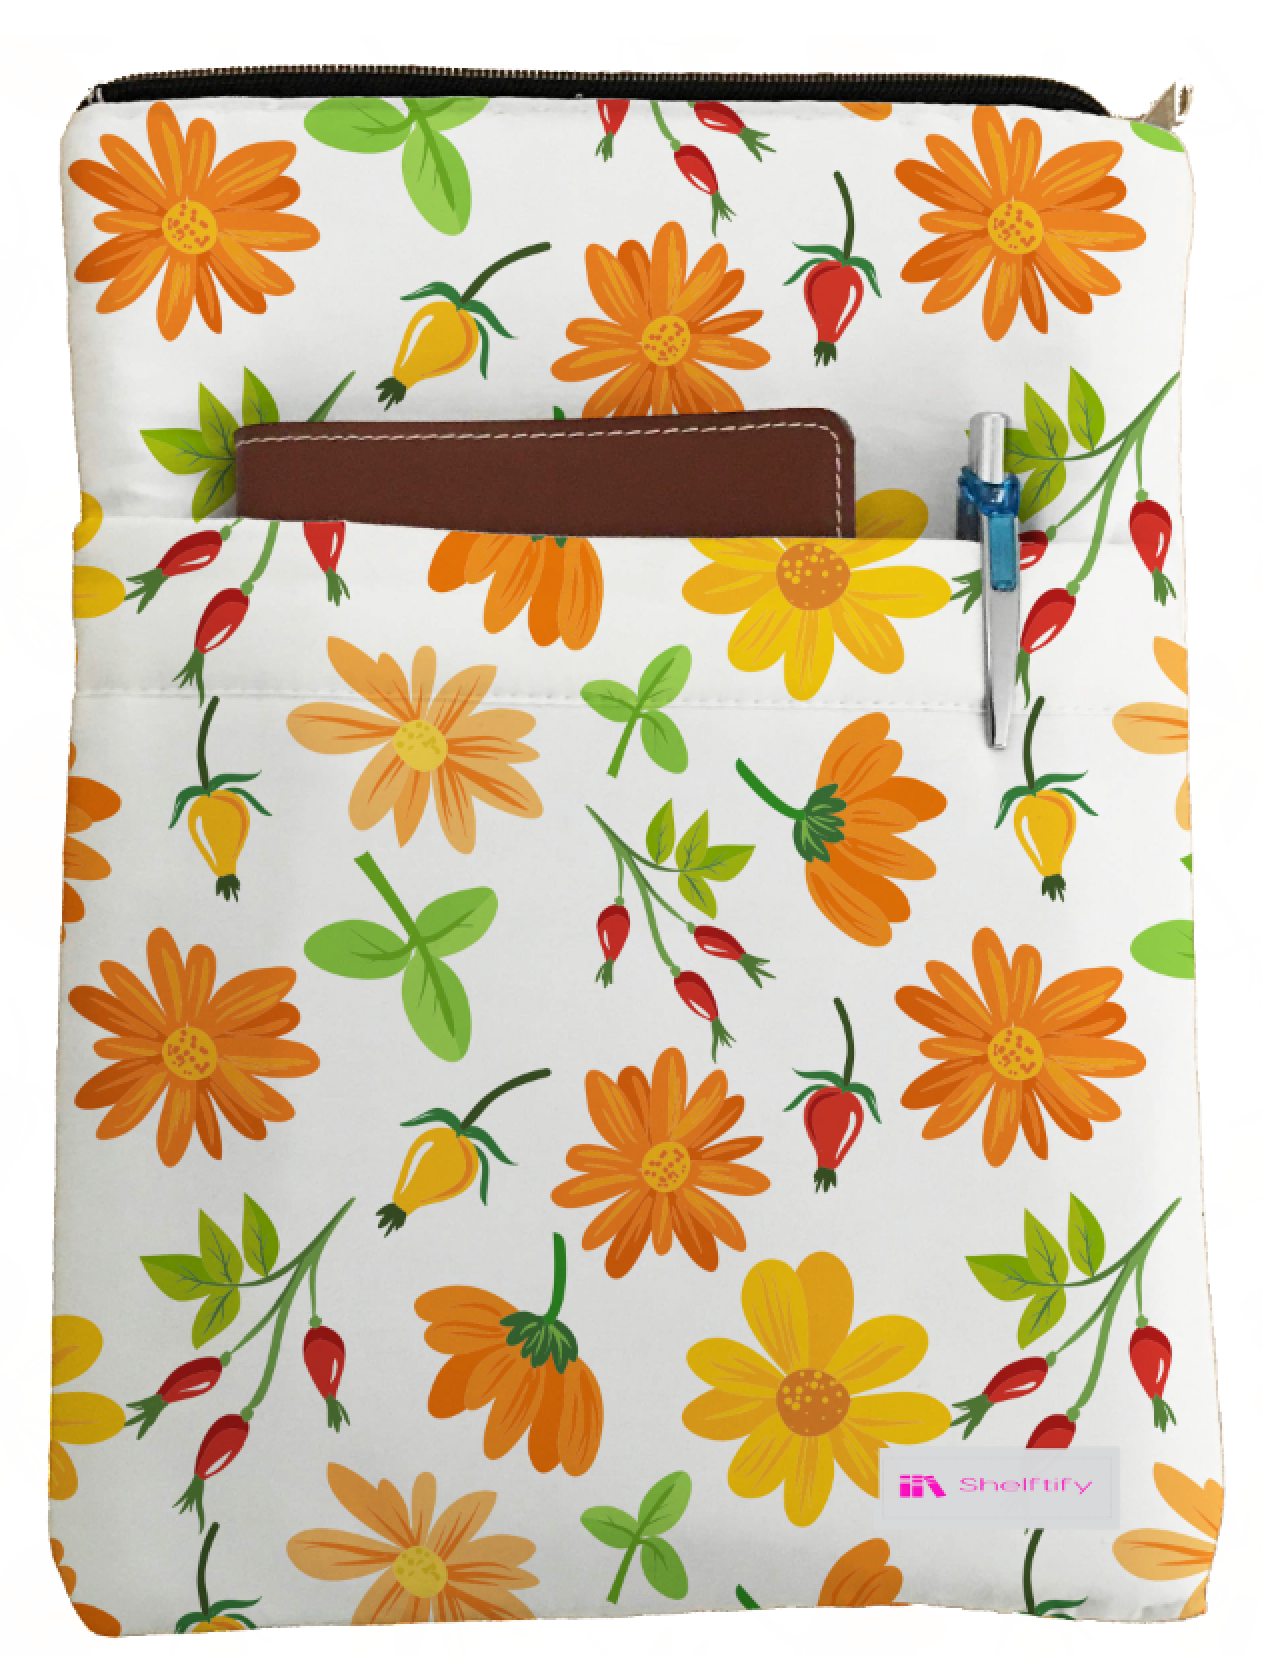 Colorful Blossom Book Sleeve - Book Cover For Hardcover and Paperback - Book Lover Gift - Notebooks and Pens Not Included